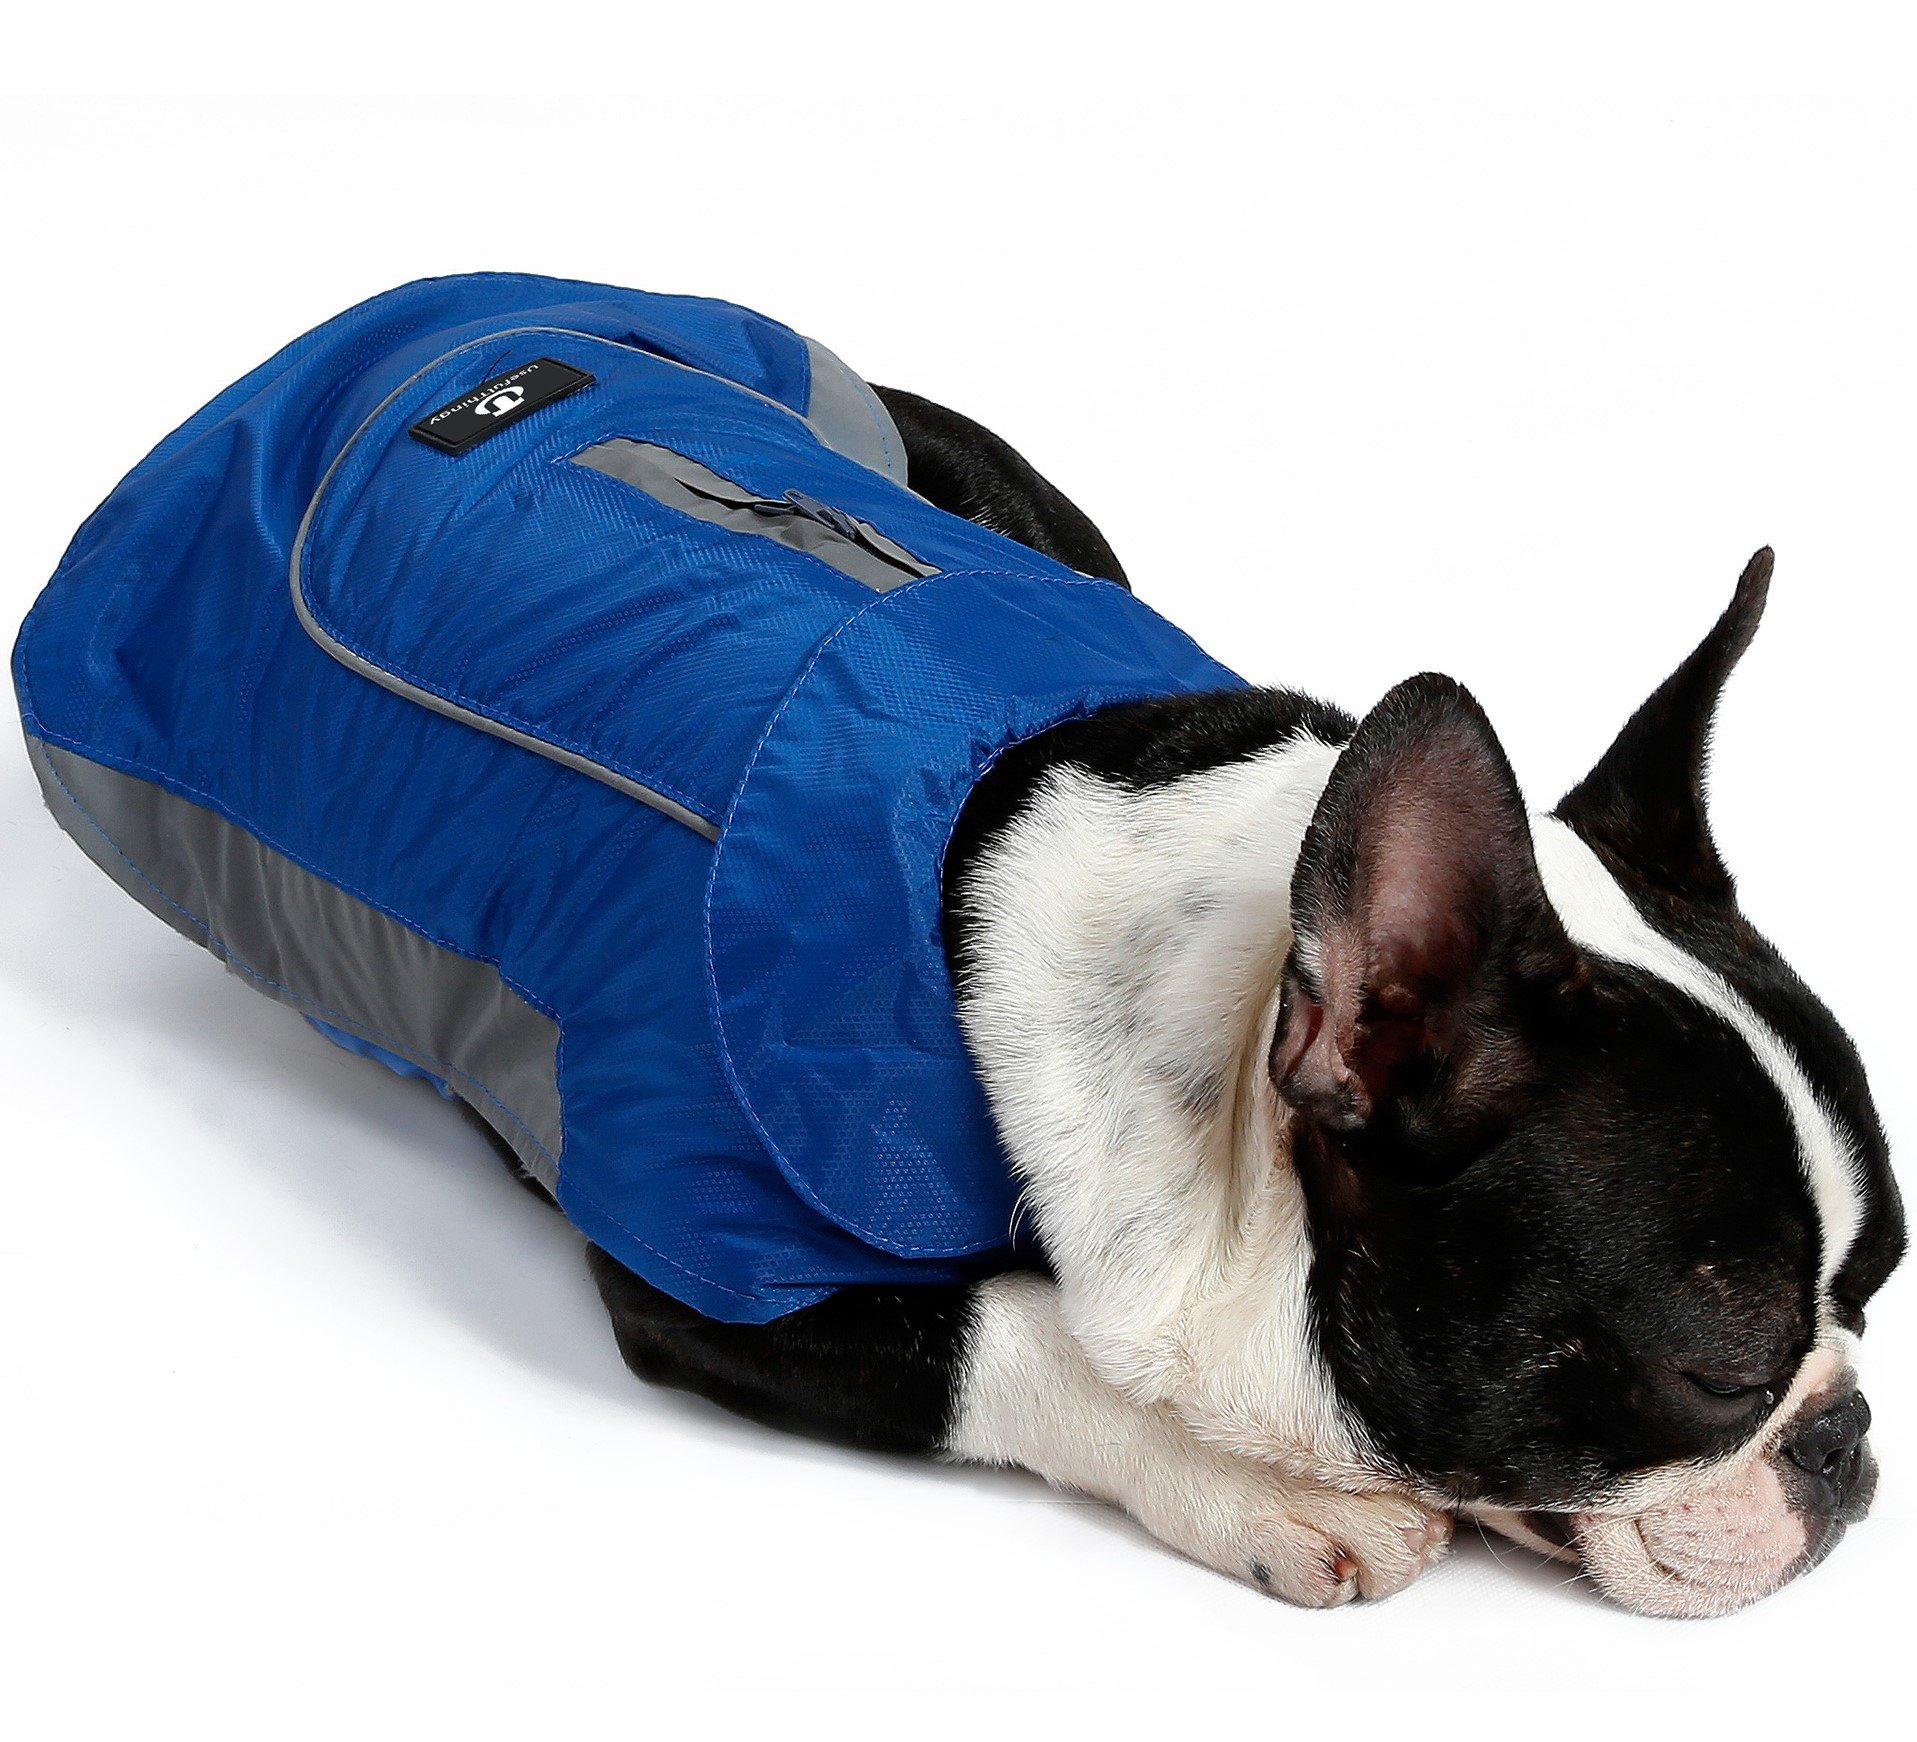 UsefulThingy Winter Coats for Dogs - Rain Jacket with Reflective Stripes for Safety - Warm Waterproof Raincoat with Harness Hole - Best for Small Medium or Large Dog 7 Sizes 3 Colors (M, Blue)